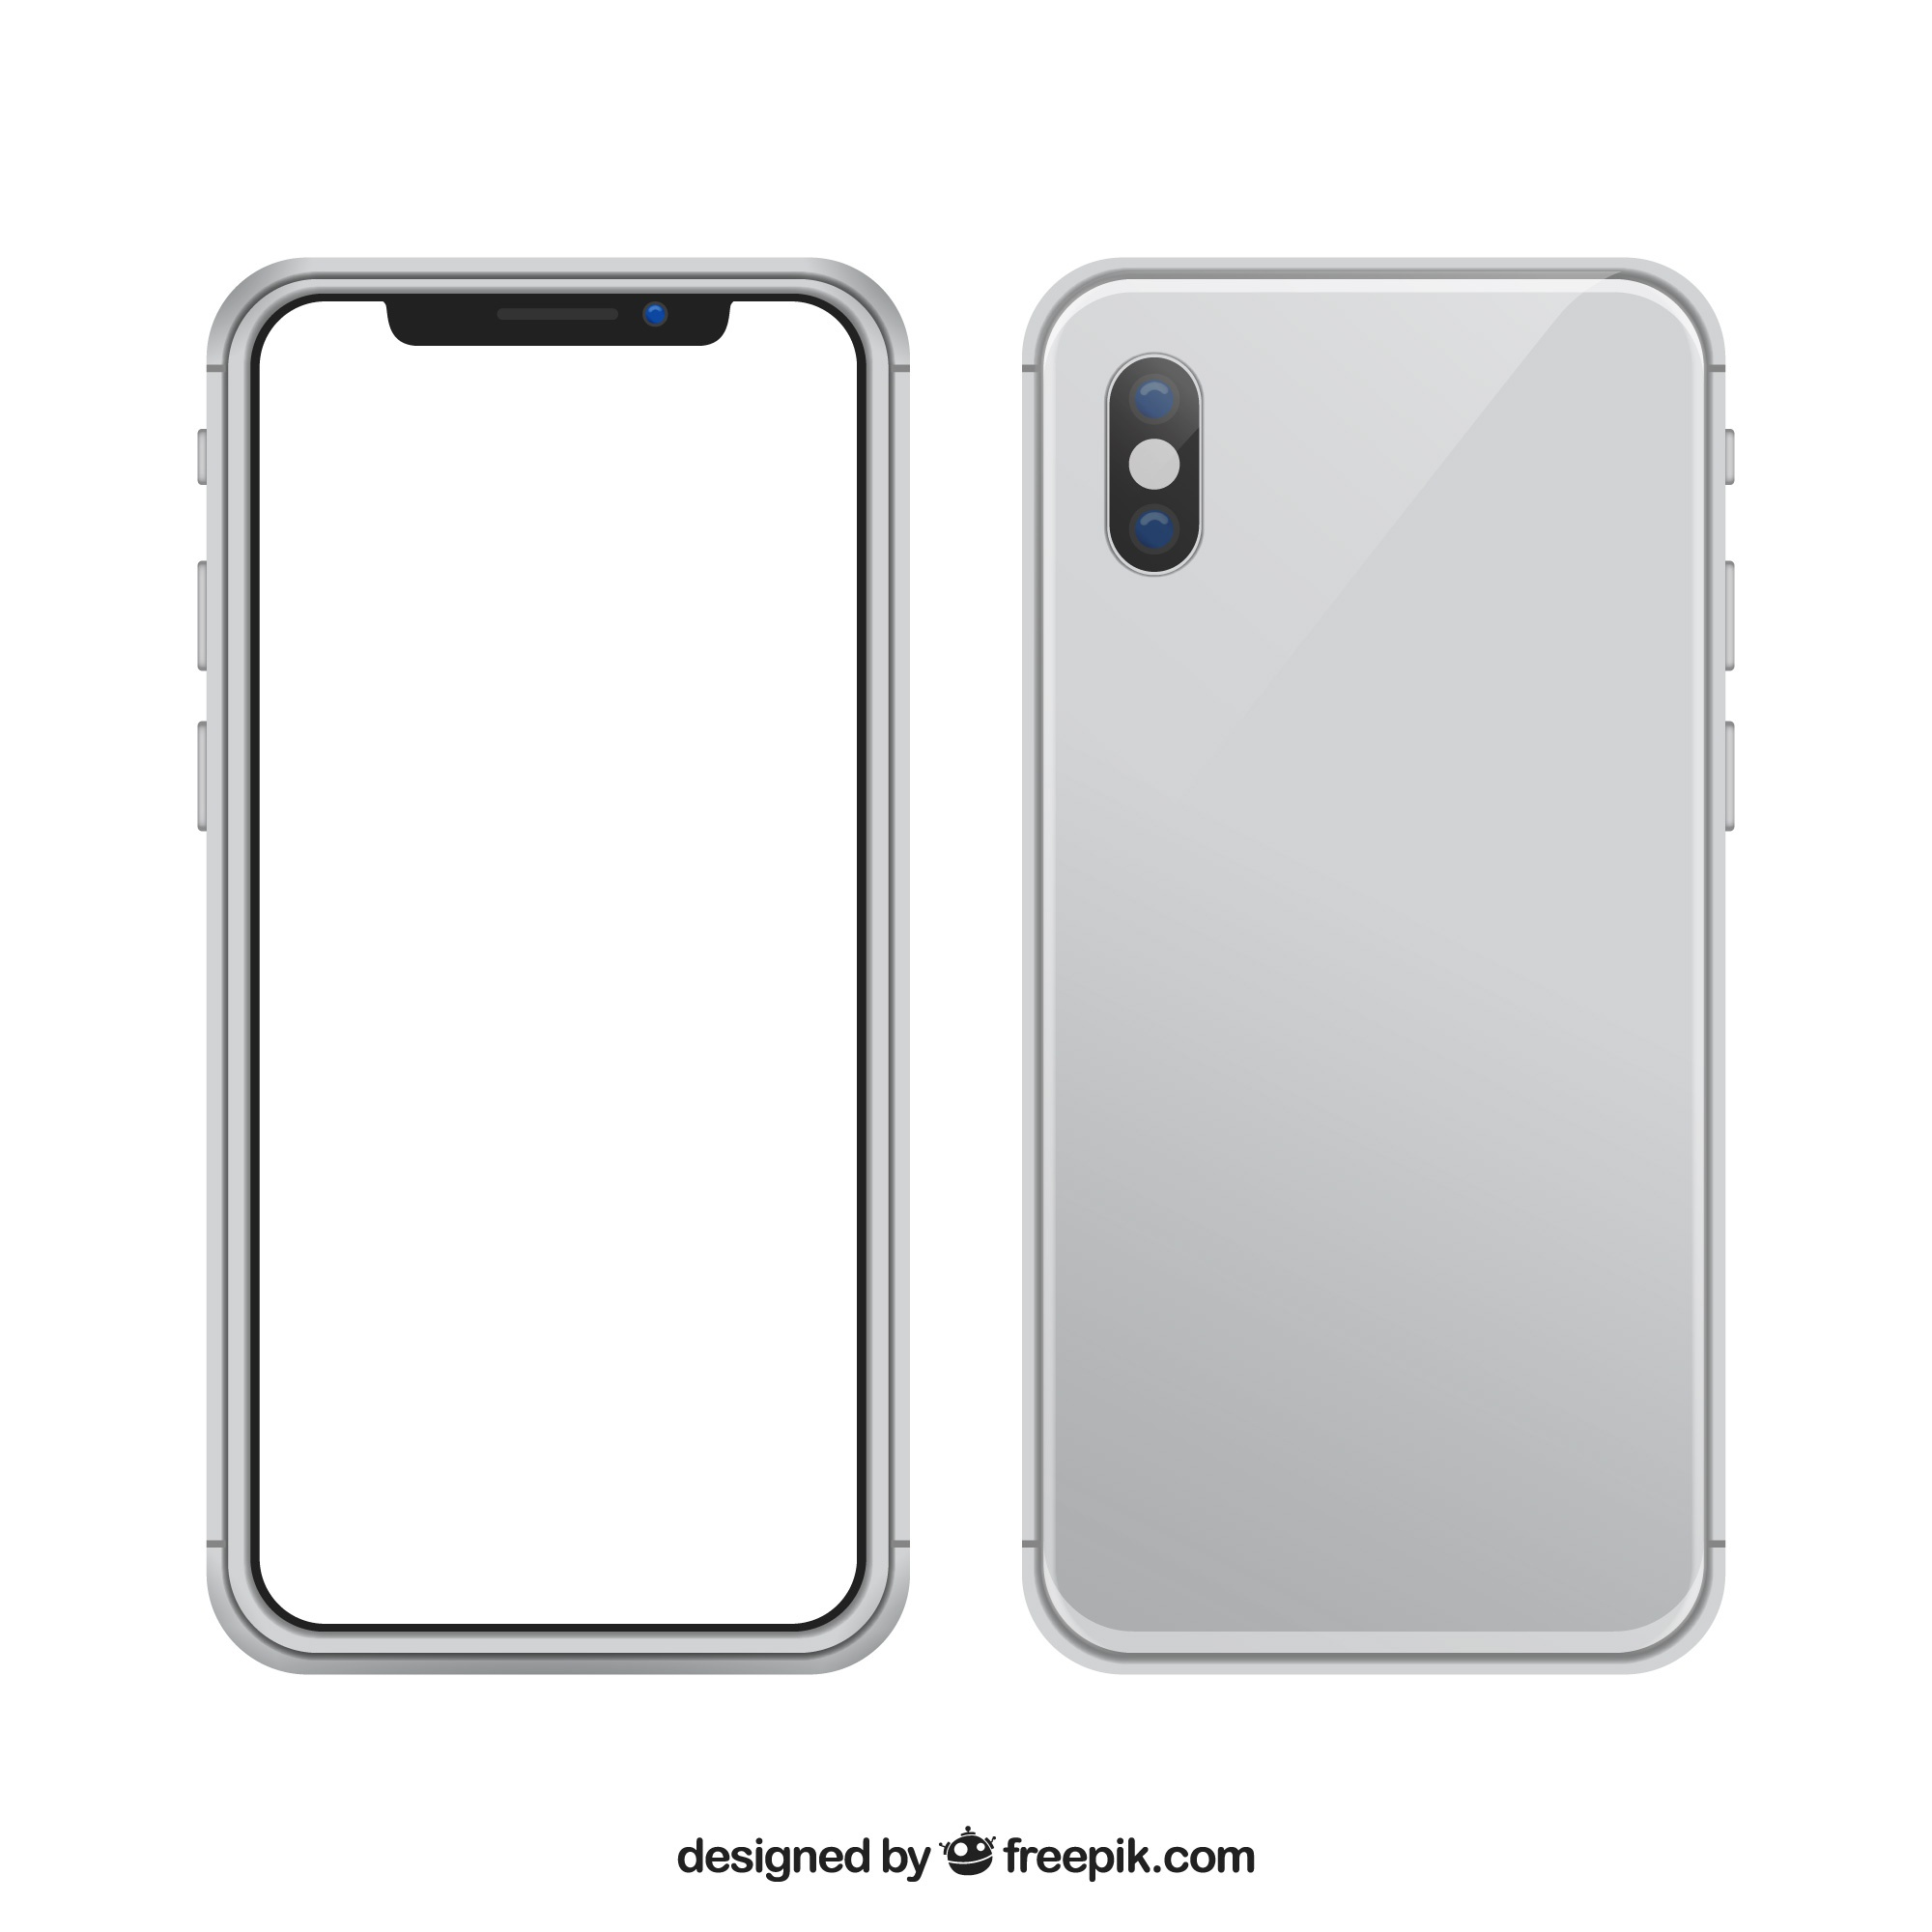 Iphone x with white screen in realistic style